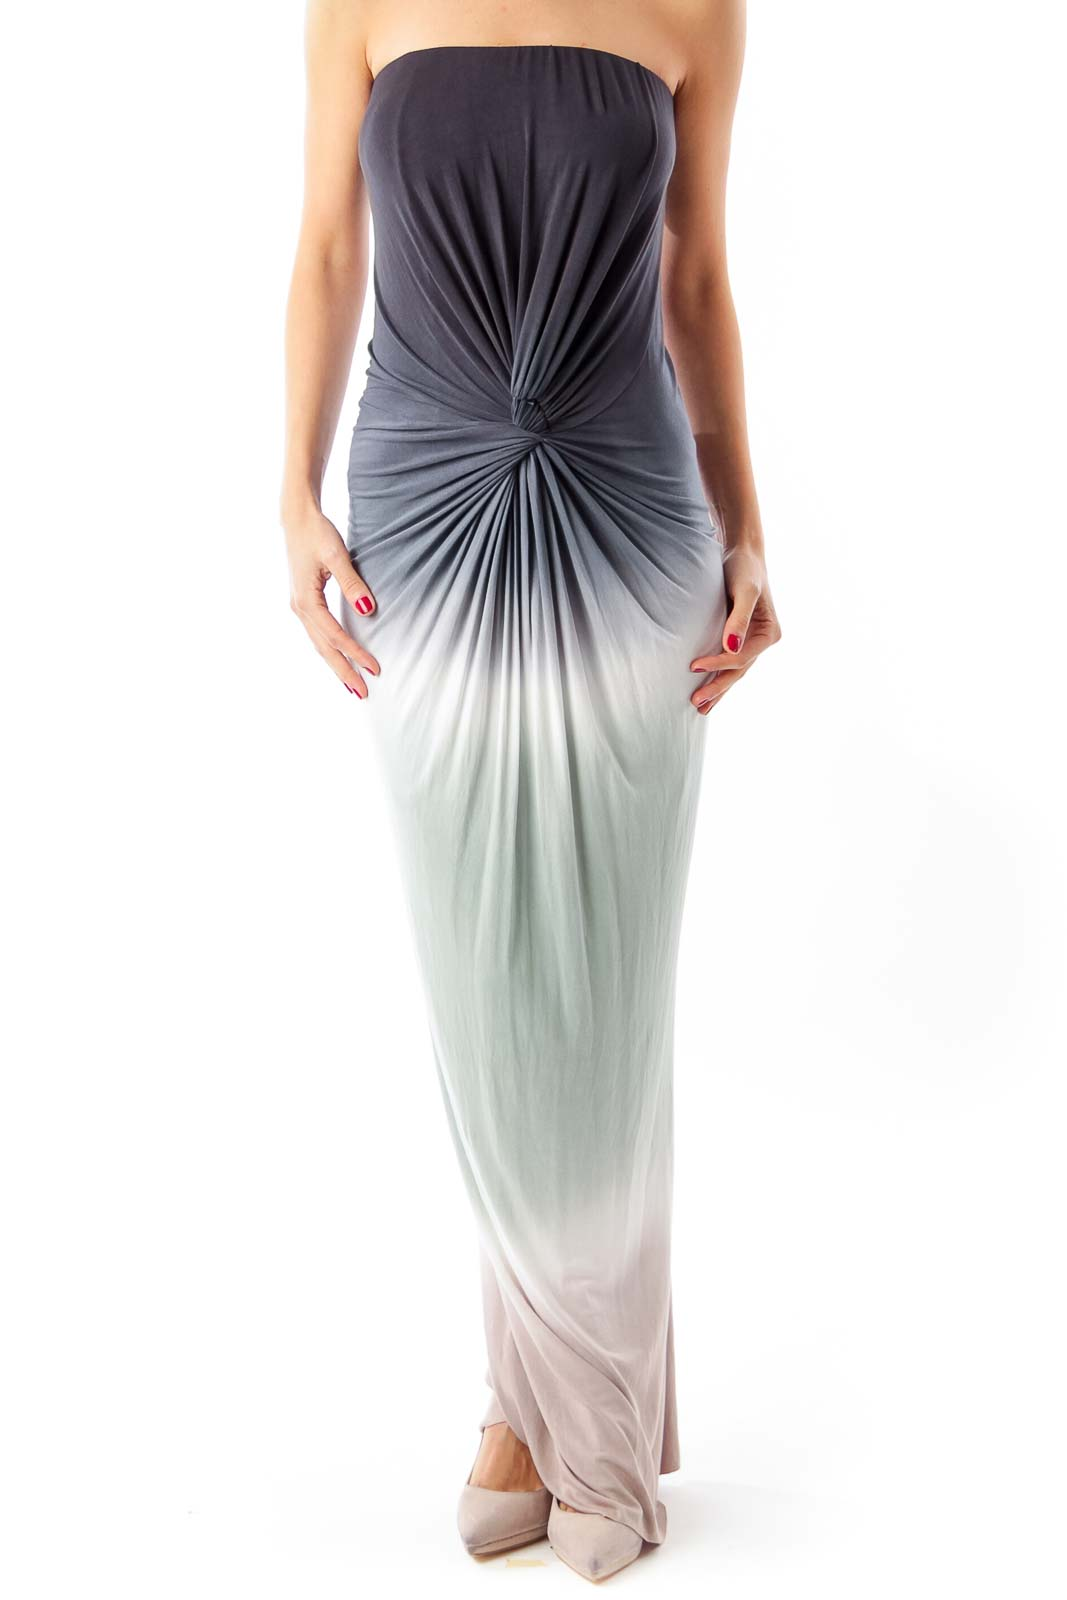 Multi-color Strapless Maxi Dress Front